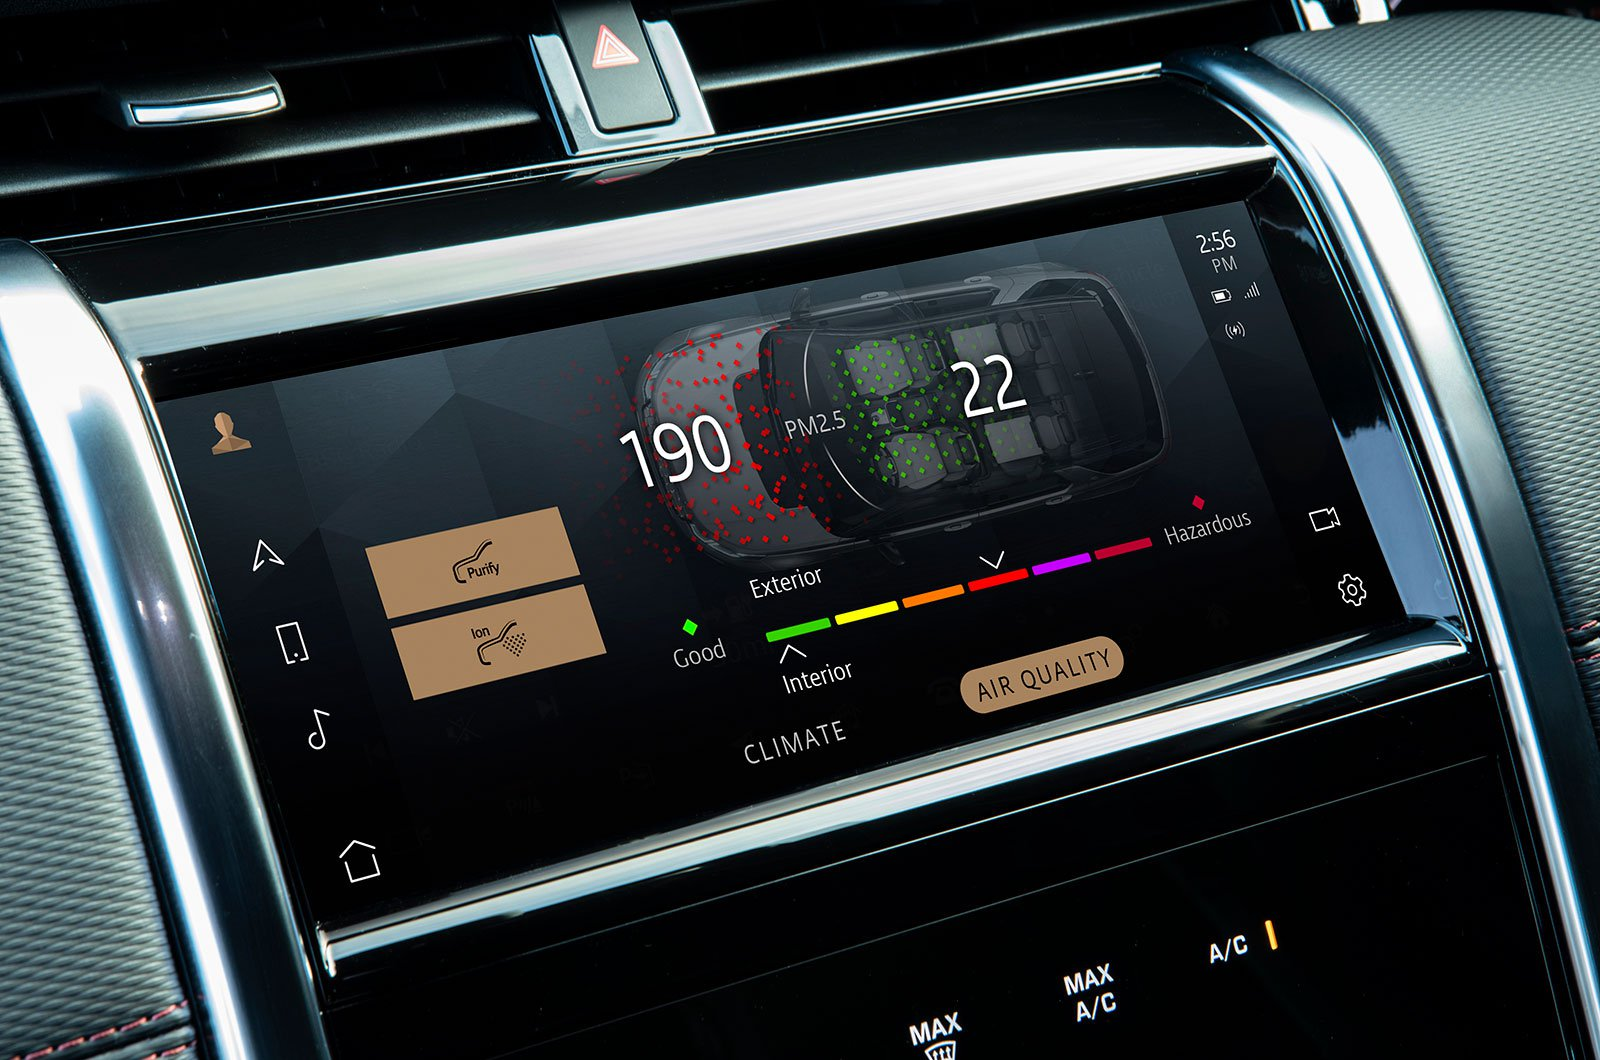 Land Rover Discovery Sport Model Year 2021 infotainment screen